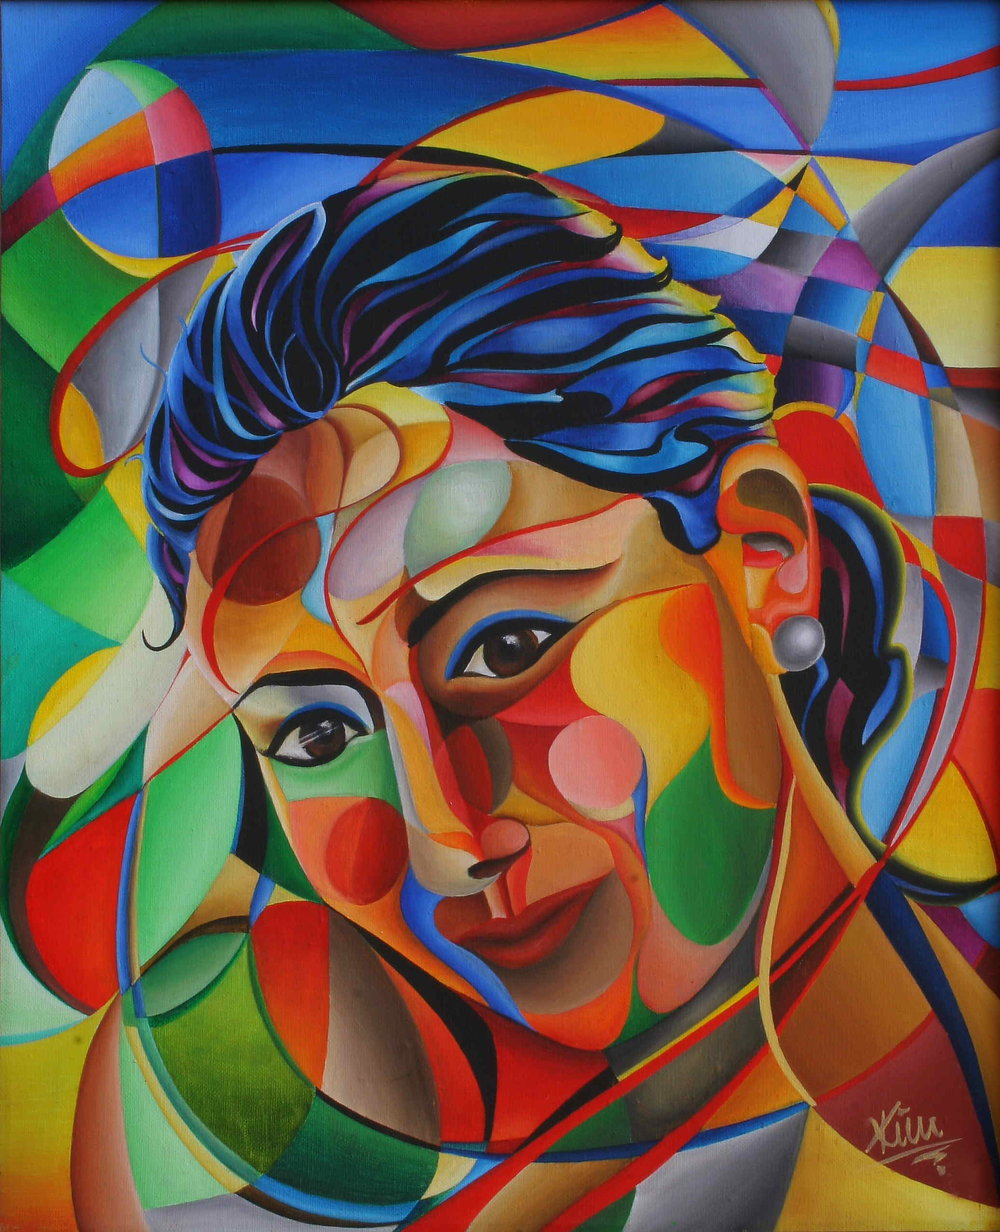 26 The colourful side of Susana.JPG